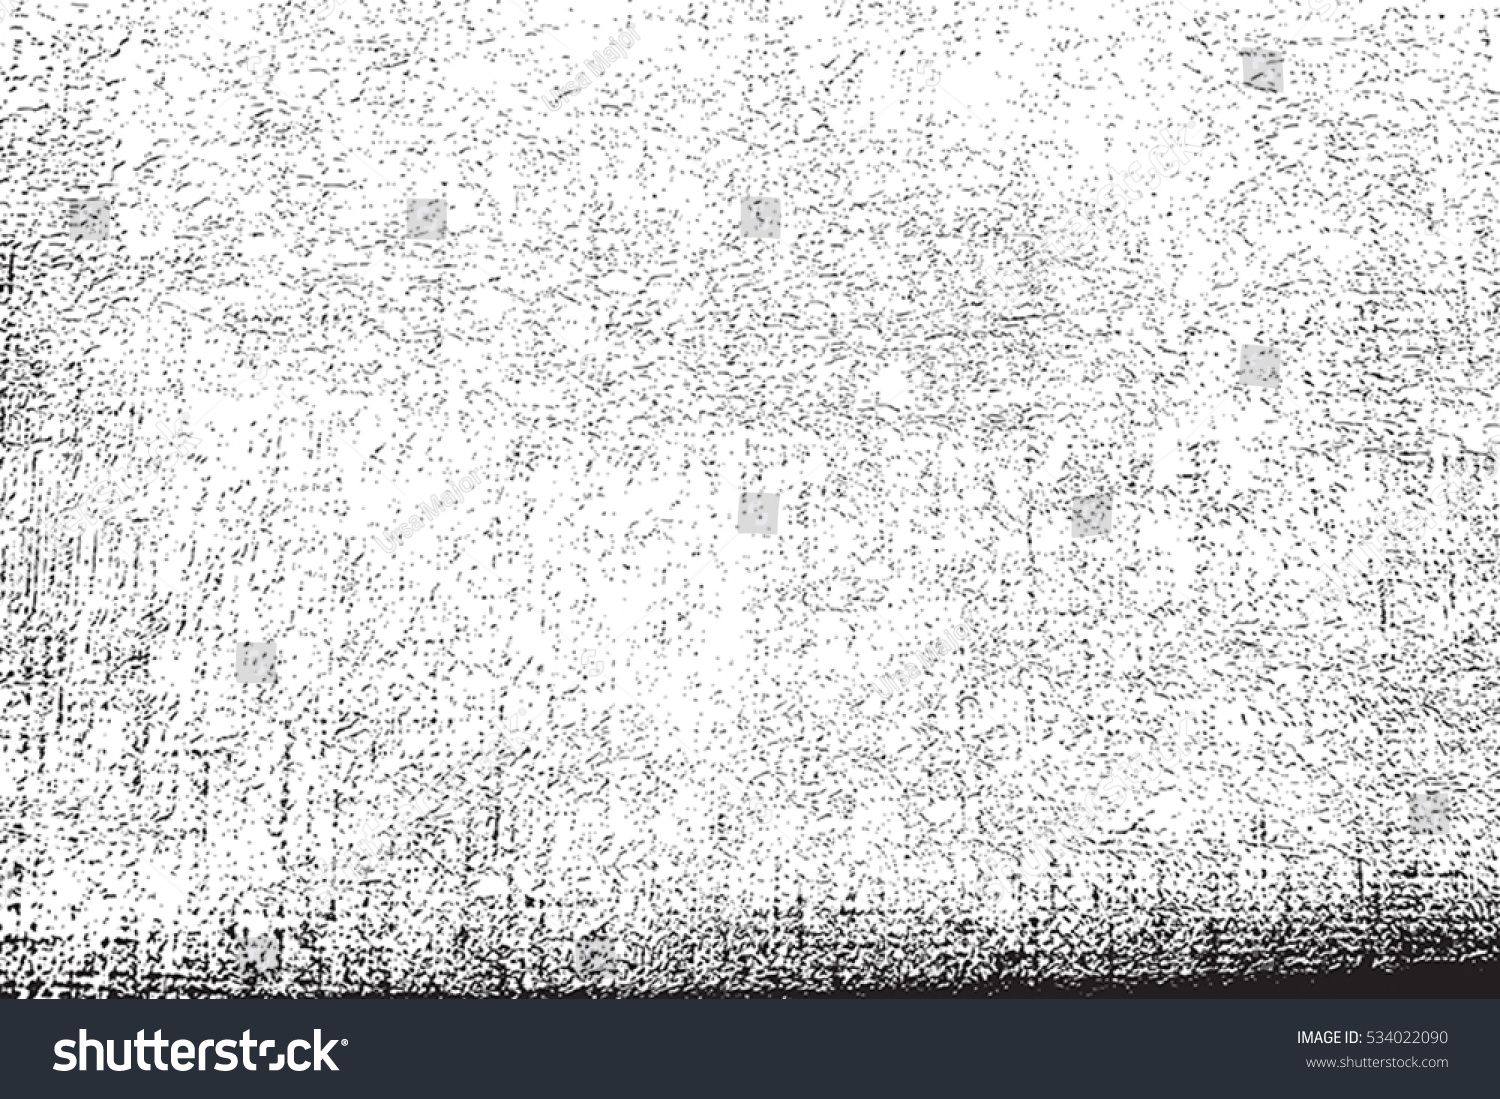 Grainy Overlay Texture Distressed Aged Background Vintage Design Element Eps10 Vector Royalty Free Image Vector Overlays Textured Background Texture